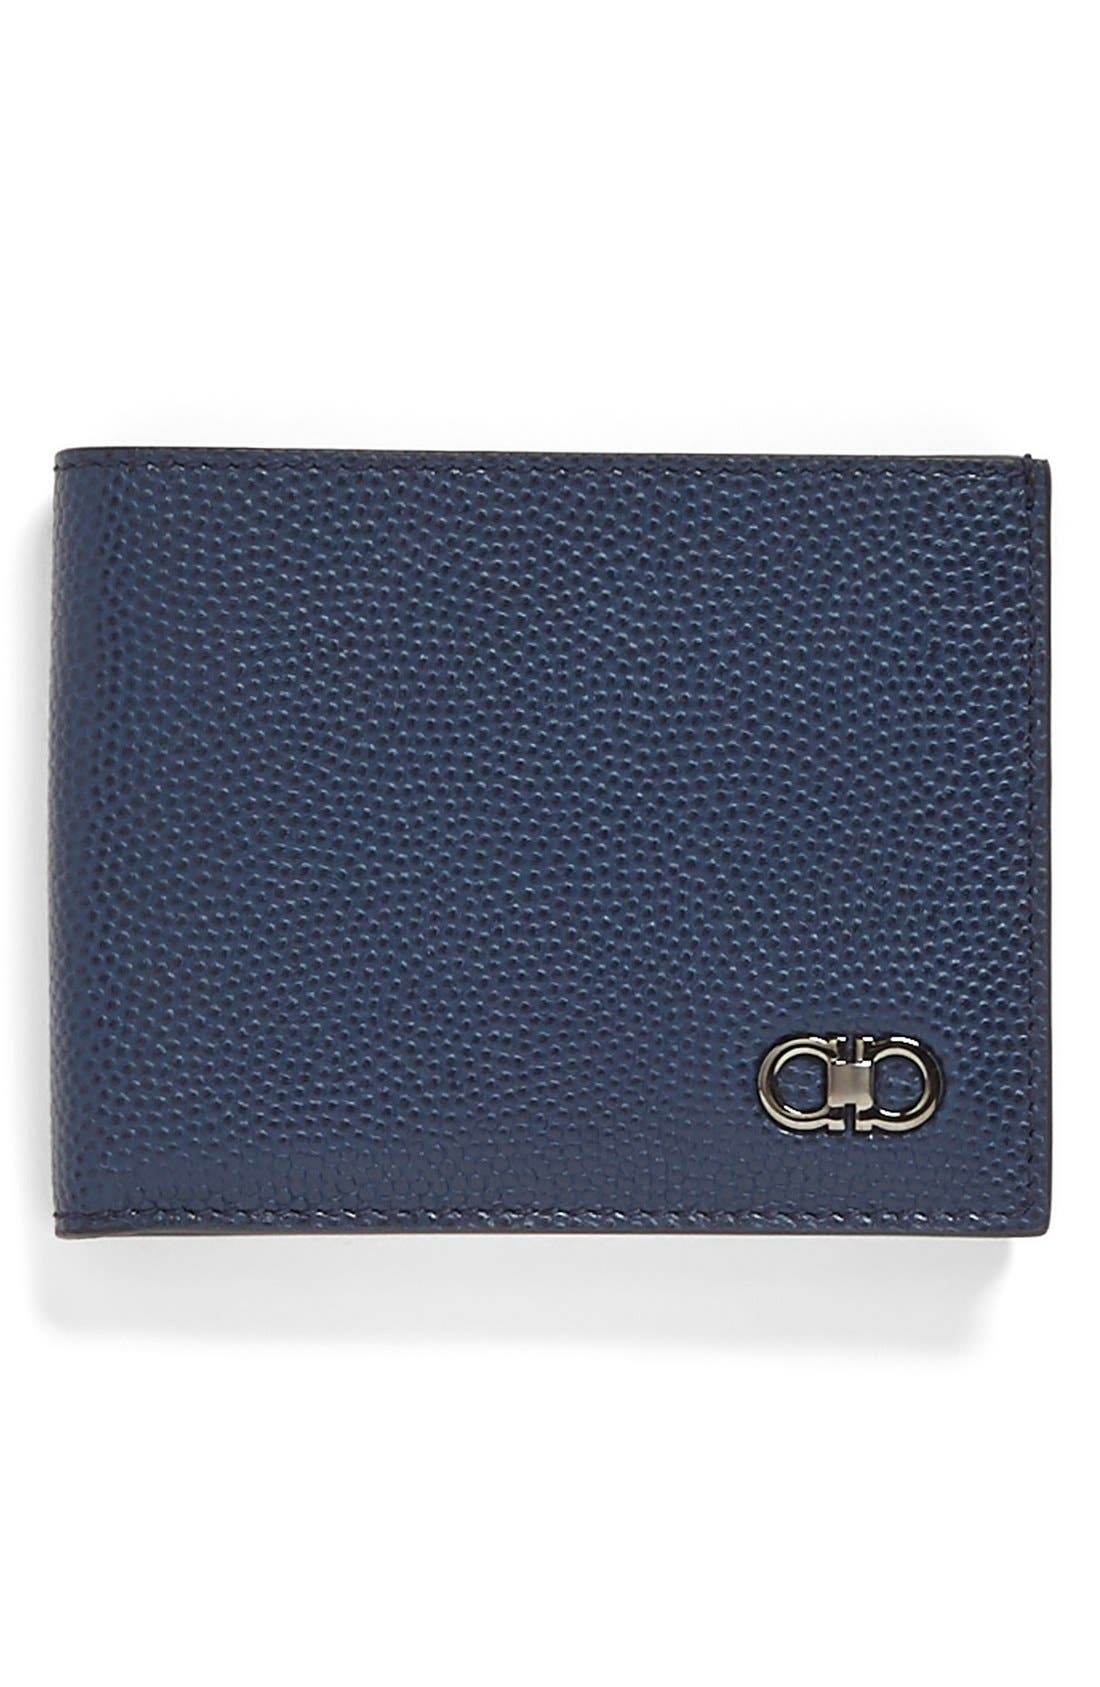 Salvatore Ferragamo 'Ten Forty One - Mini Chicco' Trifold Wallet